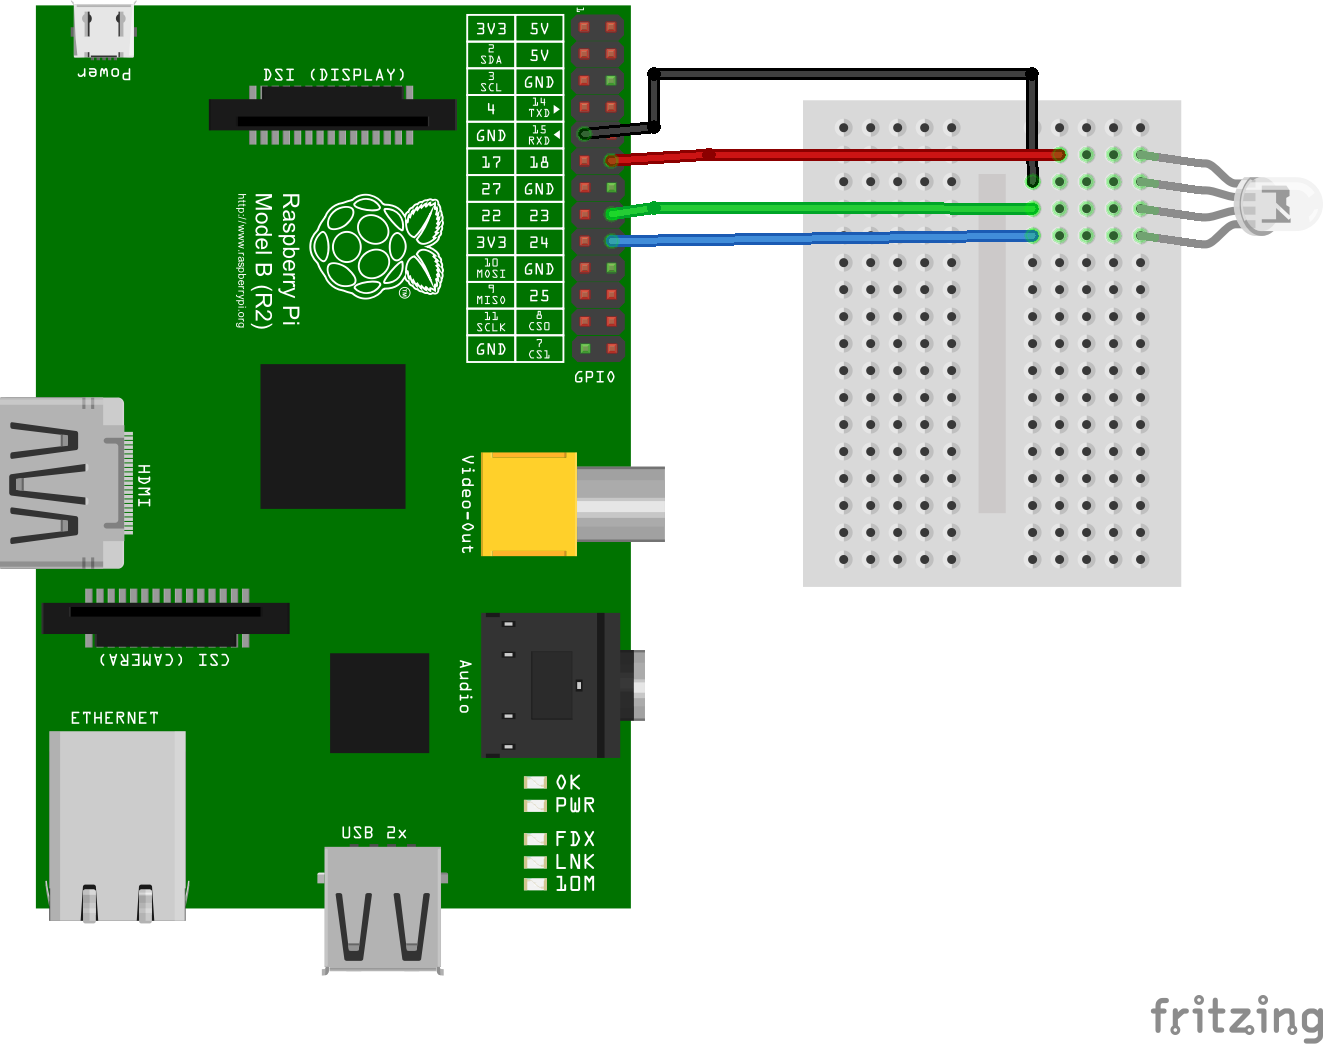 Rgb Led Pwm Raspberrypi Tasty Java Wiringpi Numbering This Picture Gives Some Insight About How To Connect